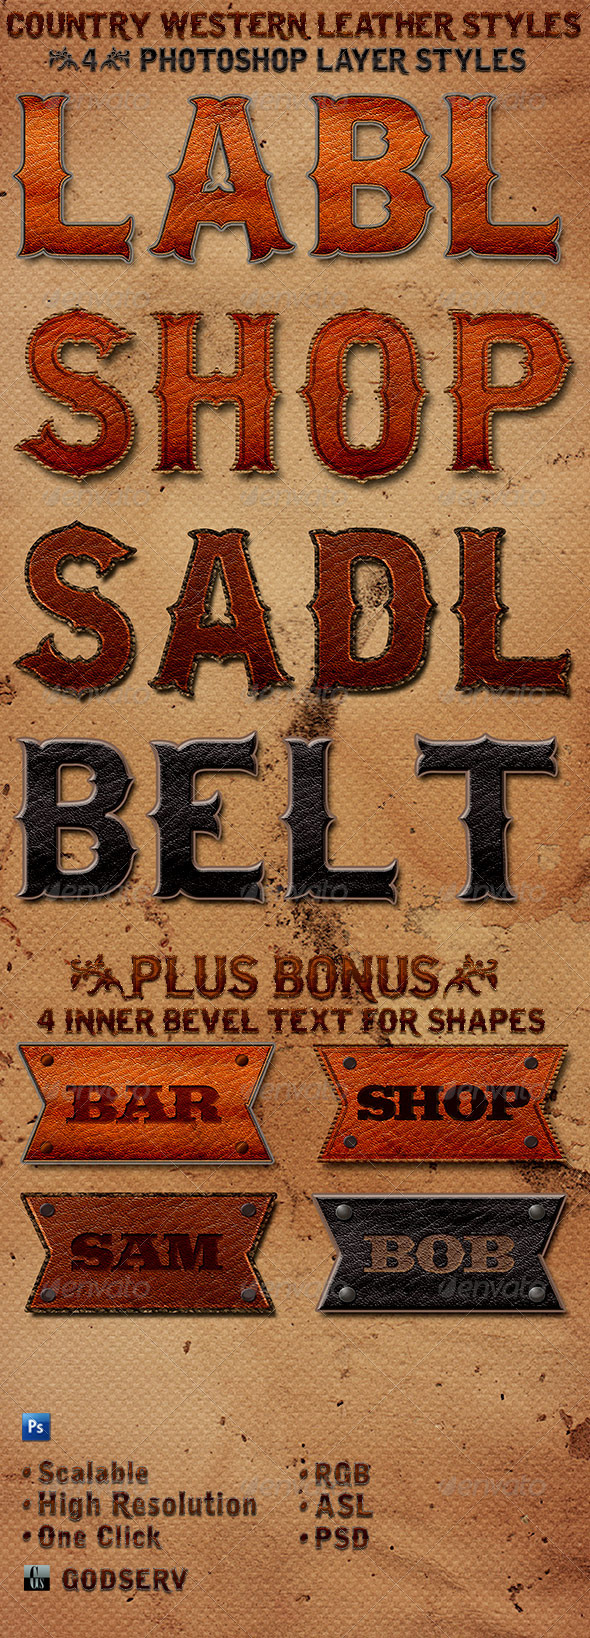 Country Western Leather Photoshop Layer Styles - Text Effects Styles